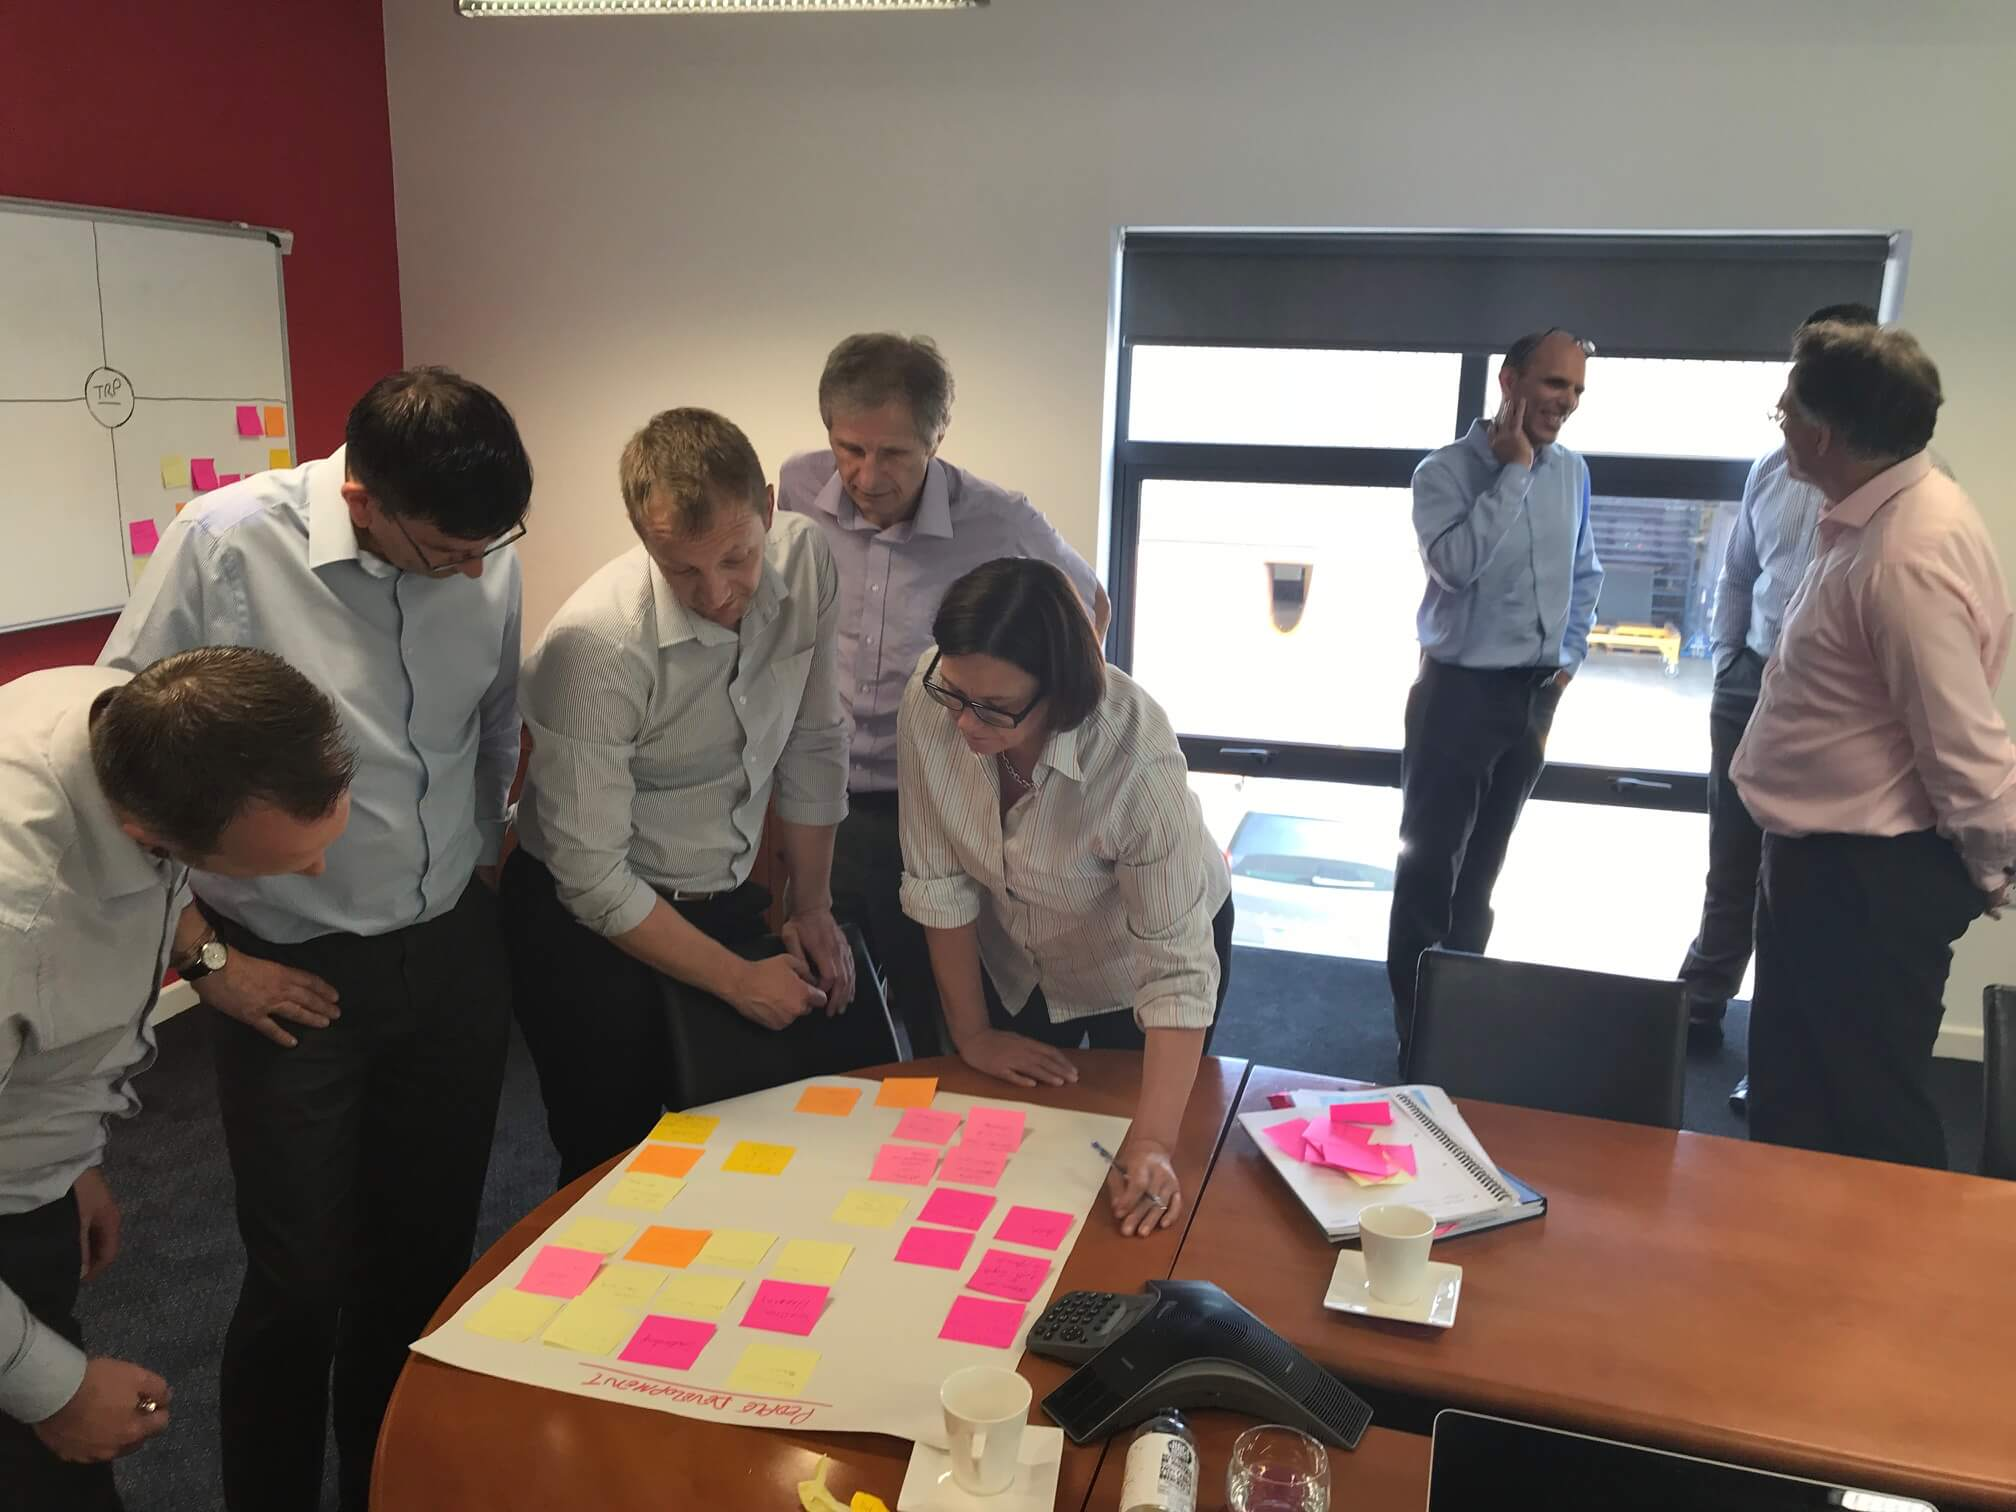 TRP one step ahead in lean strategic training